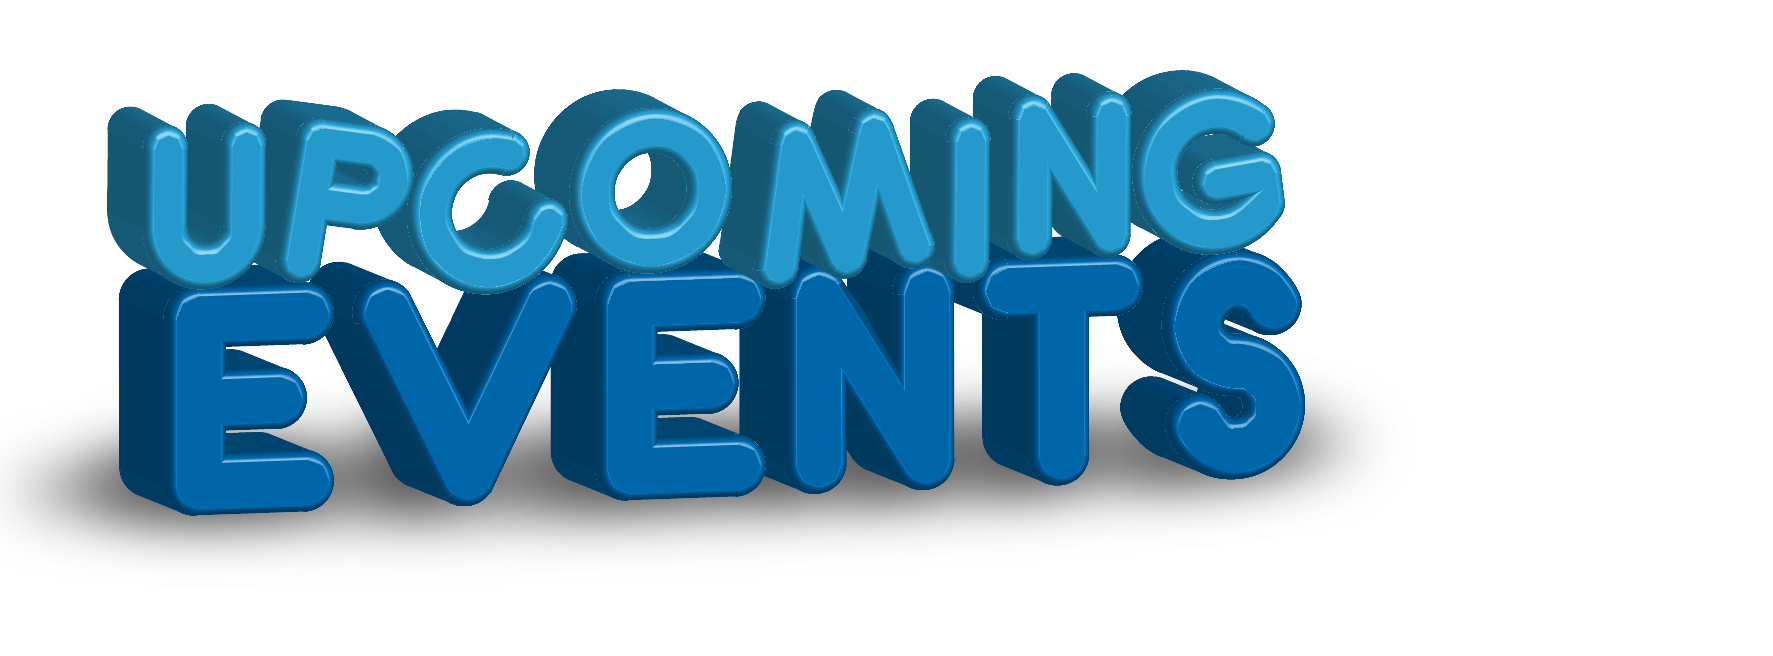 3D Upcoming Events Clipart-3D Upcoming Events Clipart-0